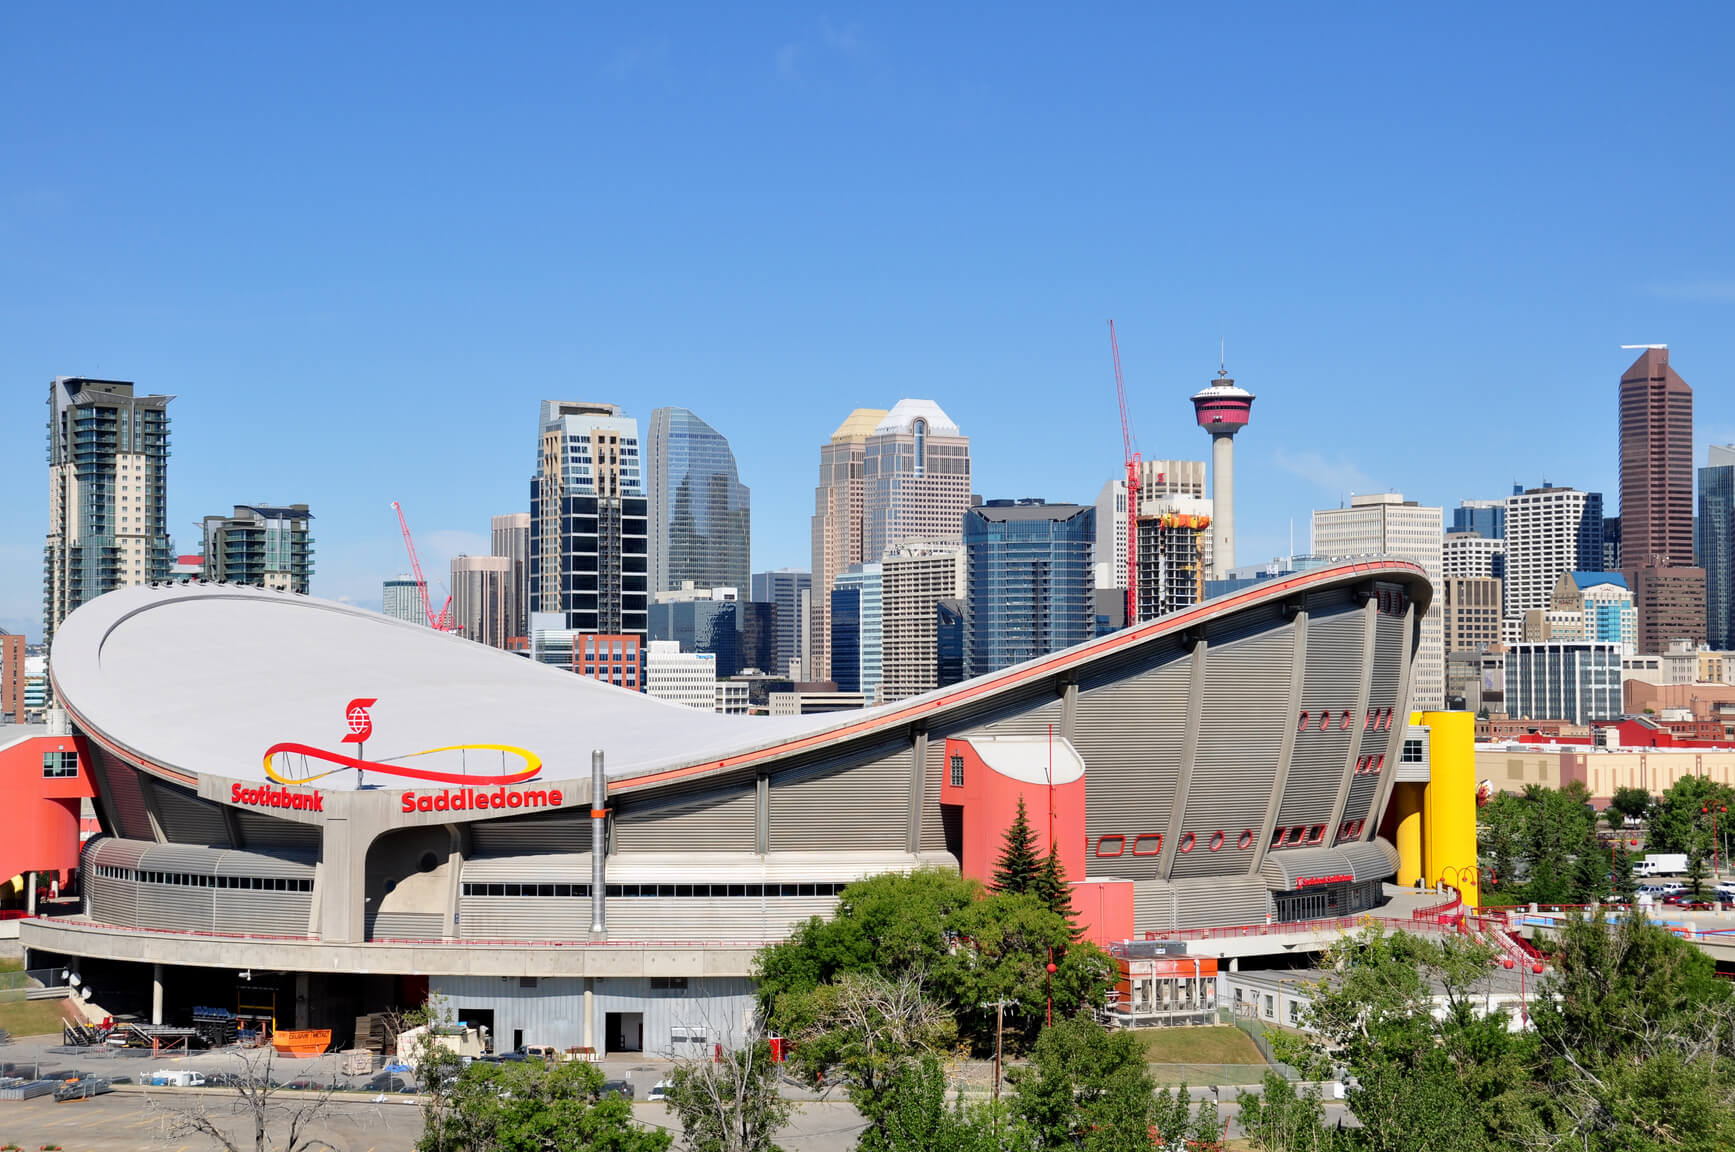 New York to Calgary, Canada for only $184 roundtrip